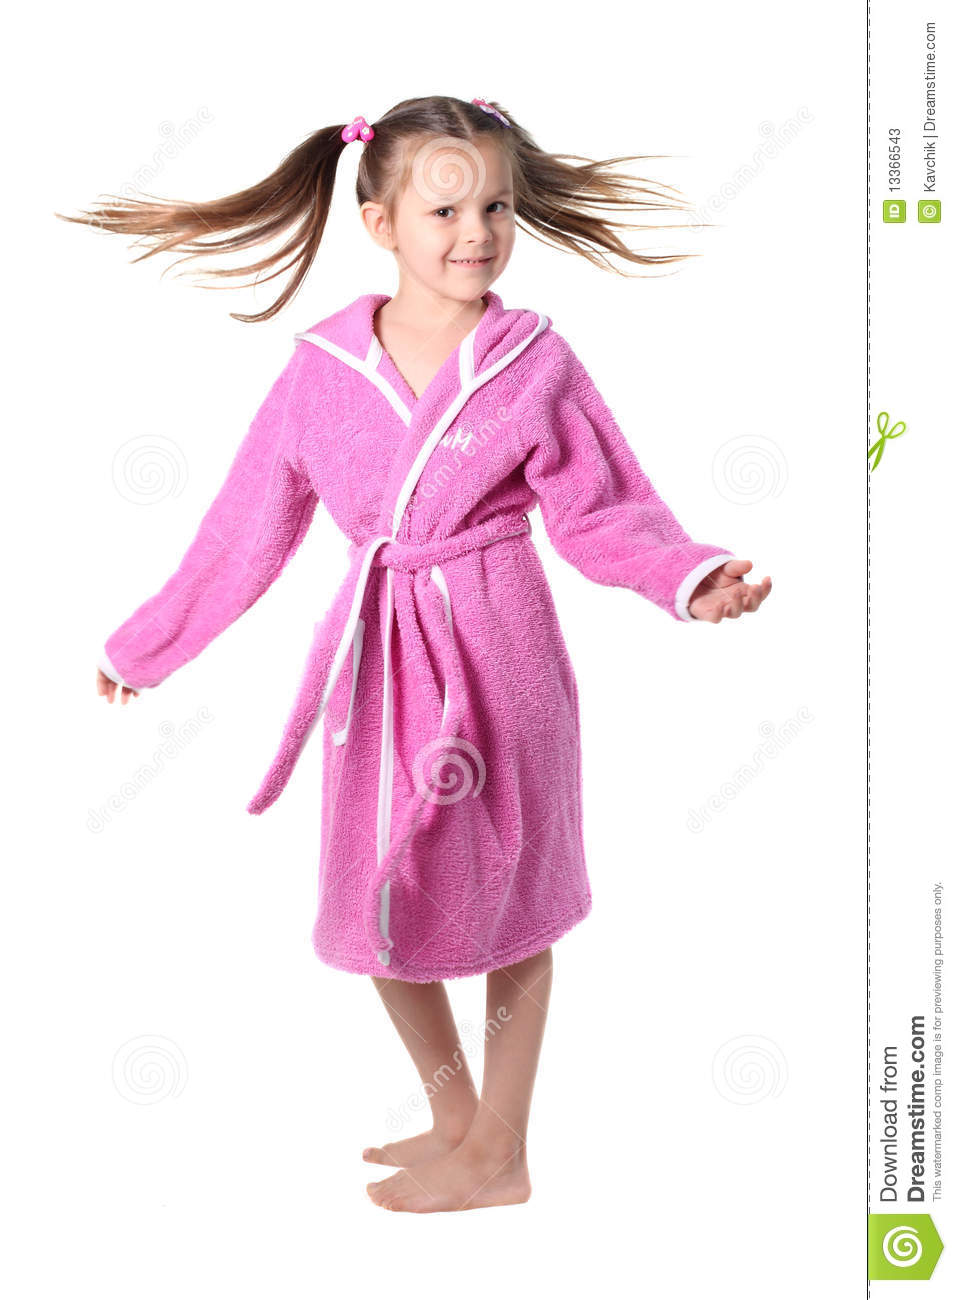 Dressing De Petite Fille little girl in dressing gown stock image - image of movement